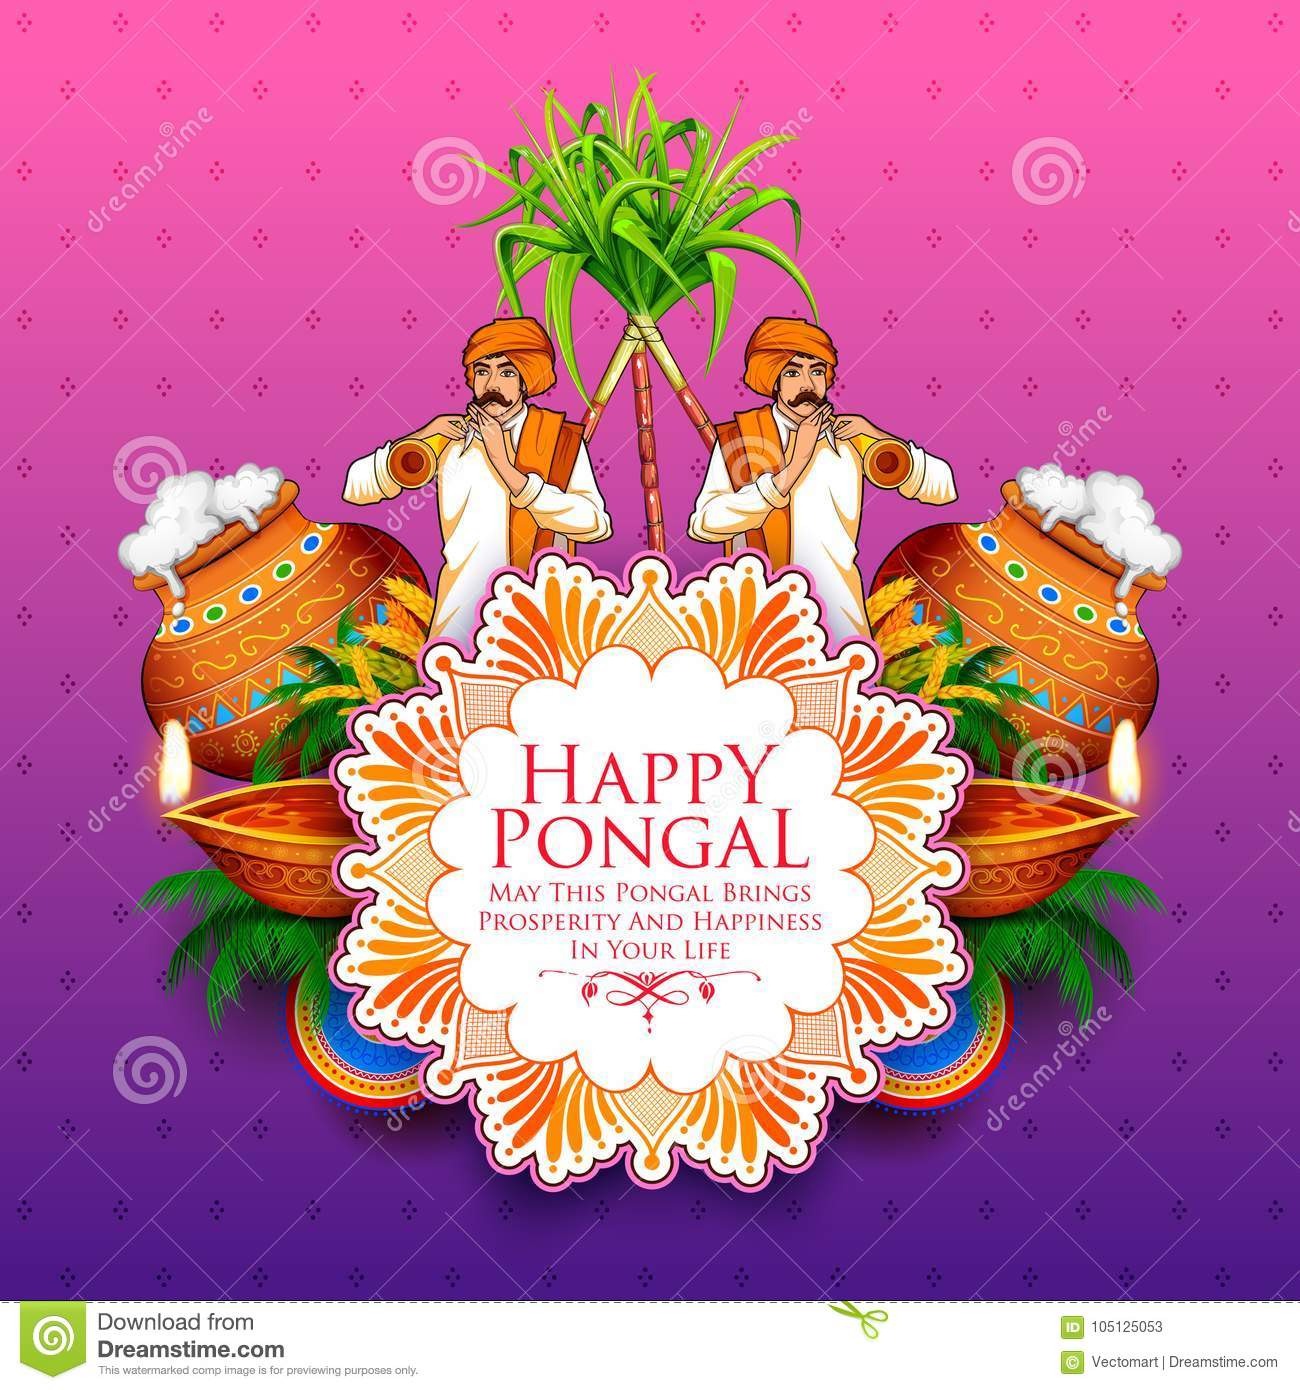 Happy pongal holiday harvest festival of tamil nadu south india download happy pongal holiday harvest festival of tamil nadu south india greeting background stock vector m4hsunfo